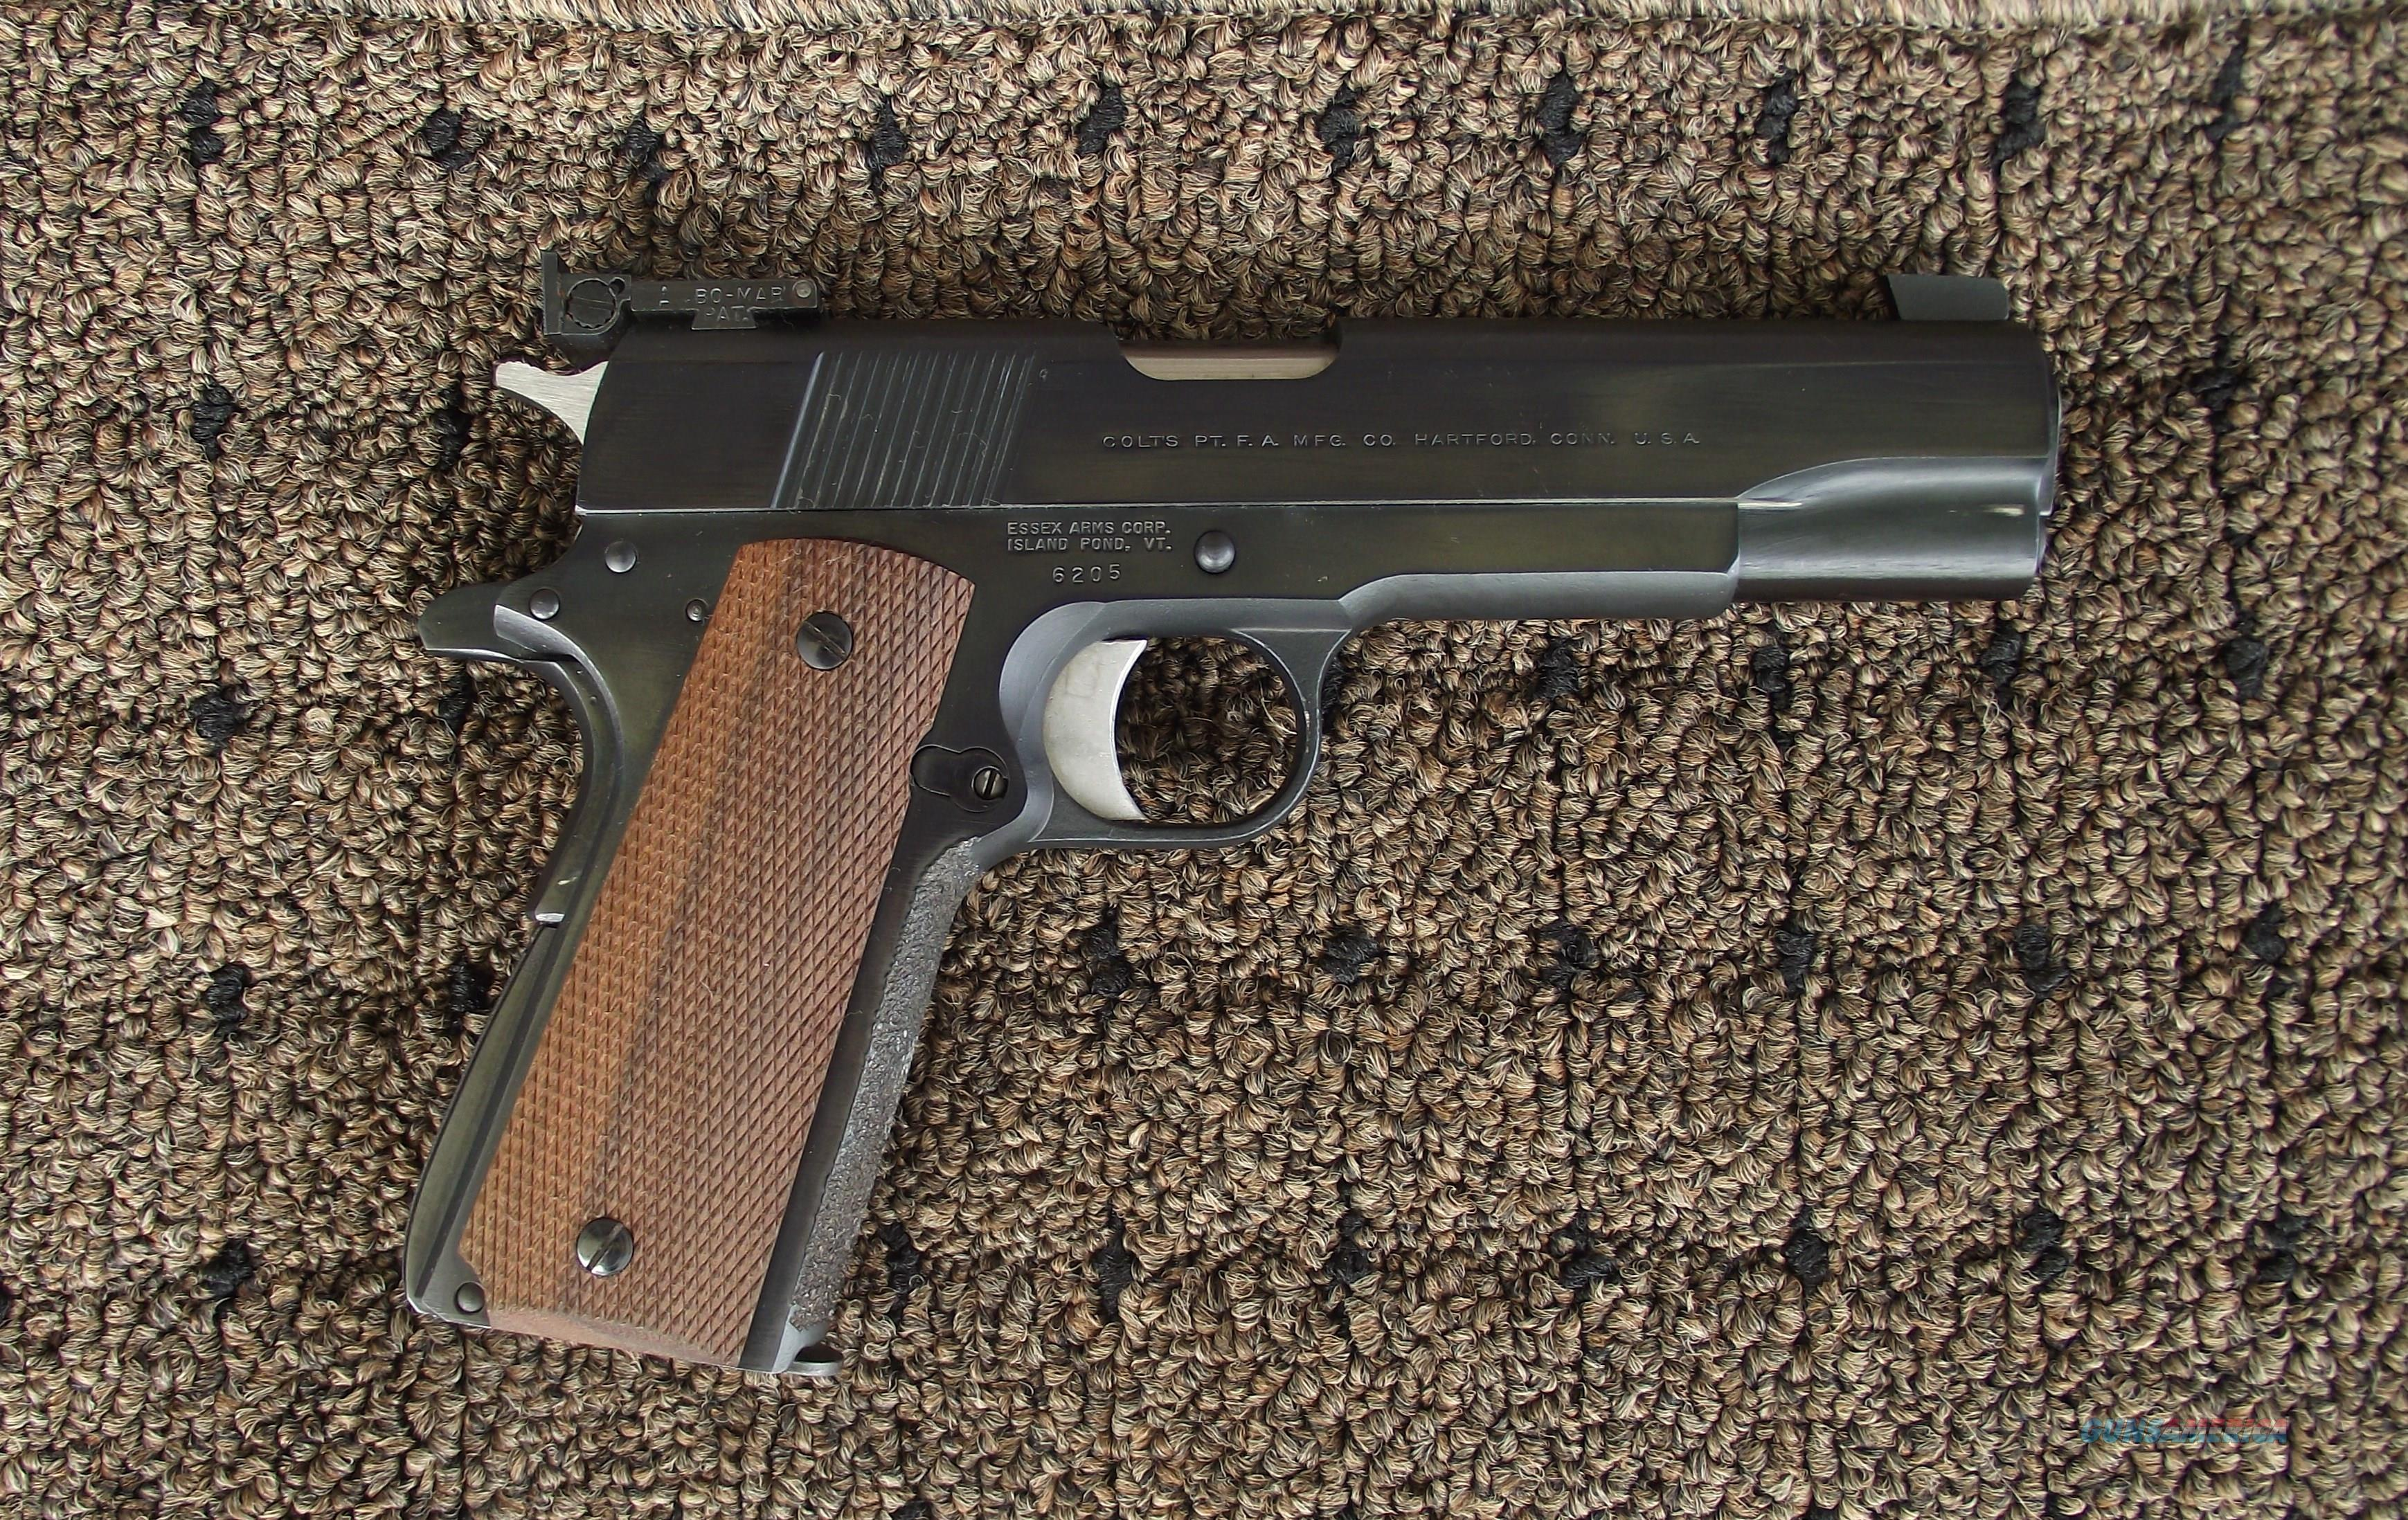 ESSEX ARMS MODEL 1911 ,45 ACP PISTOL, WITH COLT SLIDE  Guns > Pistols > 1911 Pistol Copies (non-Colt)